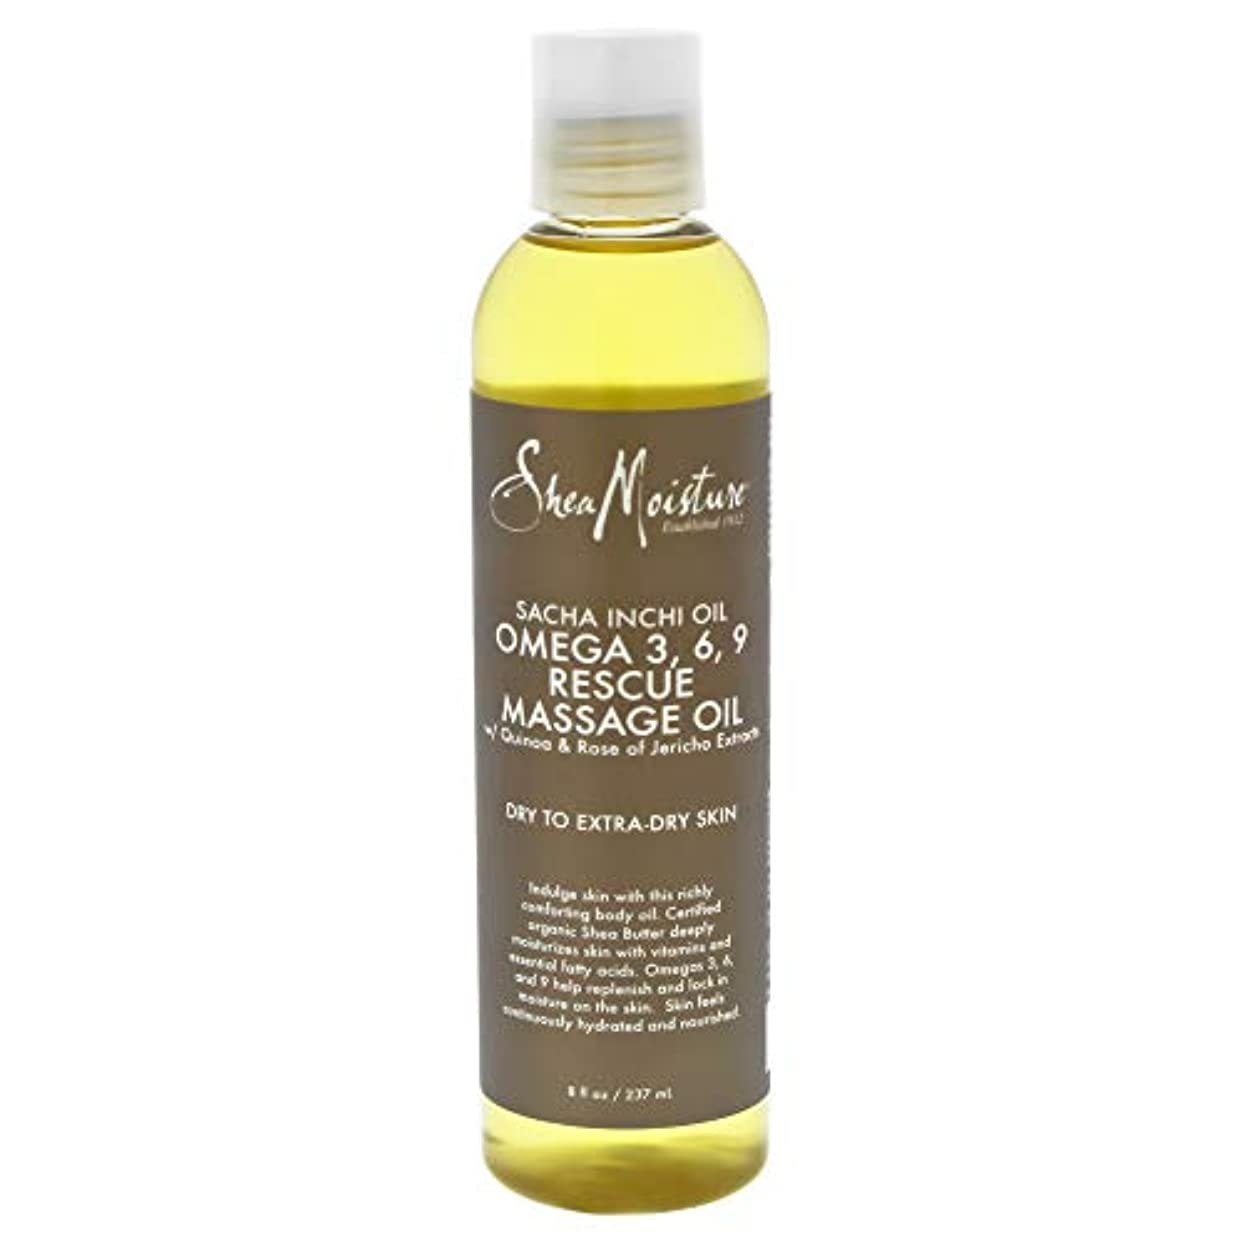 抑制するバーチャルガチョウSacha Inchi Oil Omega-3-6-9 Rescue Massage Oil